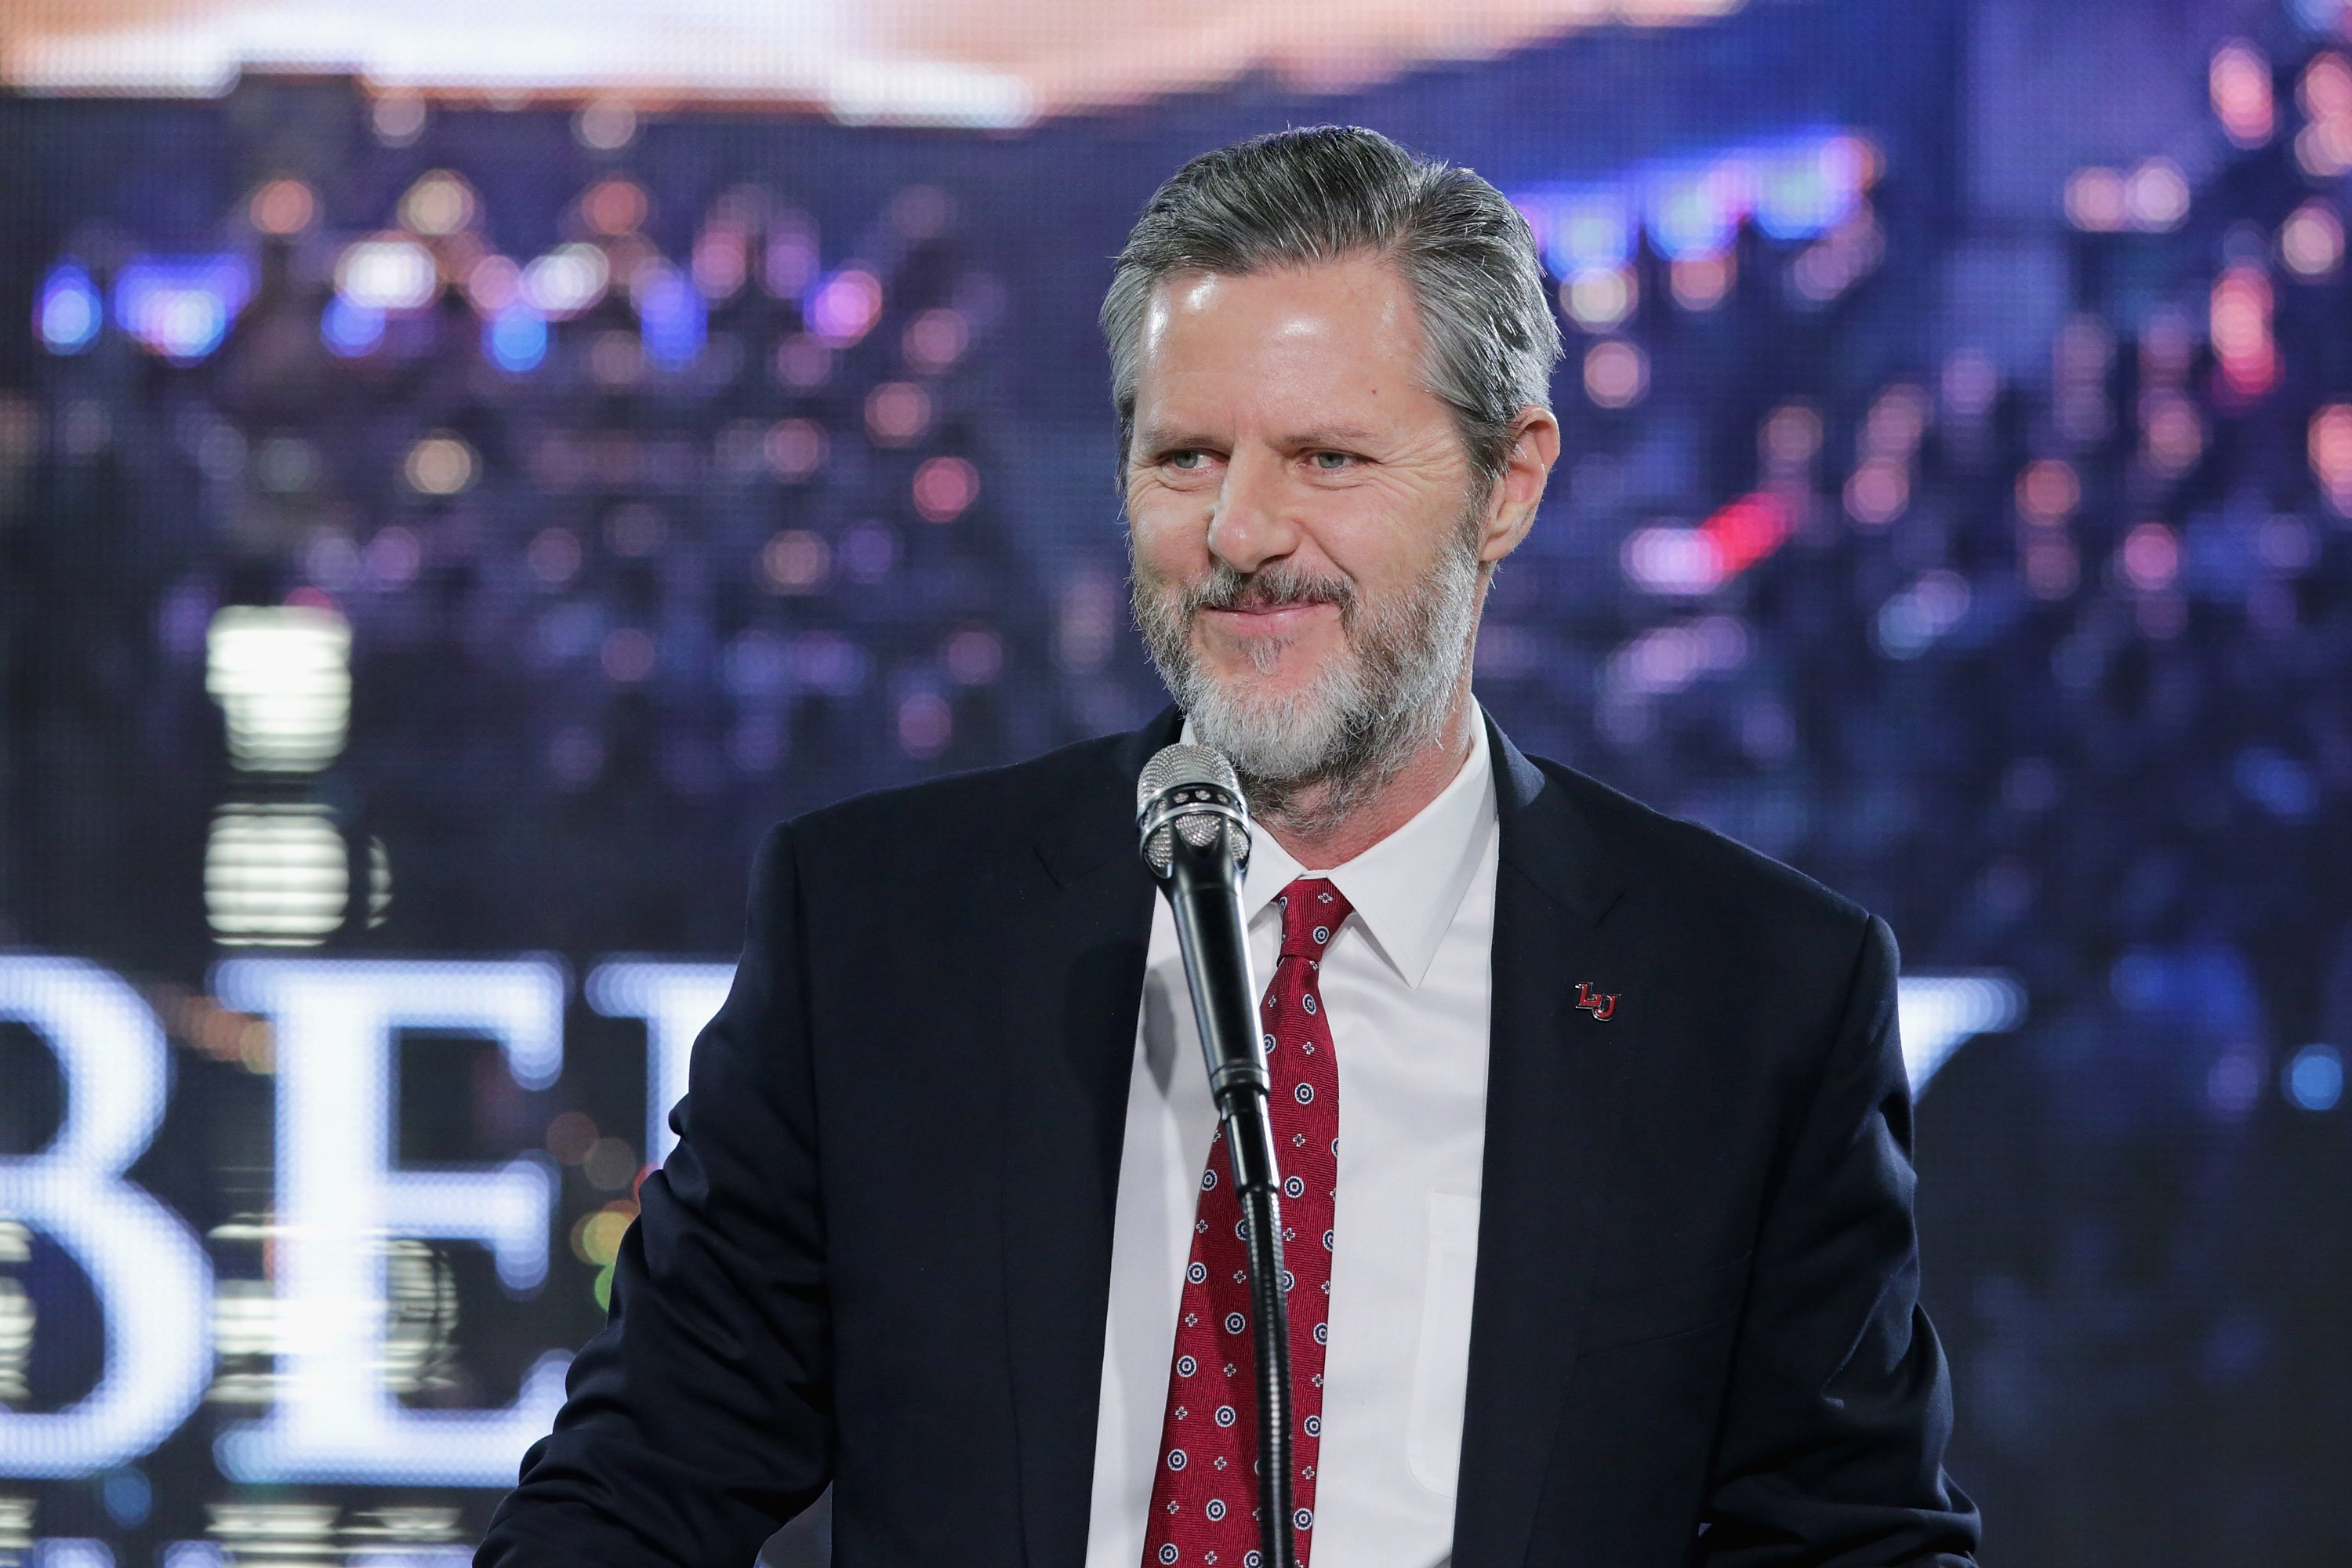 "LYNCHBURG, VA - JANUARY 18: Liberty University President Jerry Falwell, Jr. introduces Republican presidential candidate Donald Trump with a sports jersey after he delivered the convocation in the Vines Center at the university January 18, 2016 in Lynchburg, Virginia. Although Falwell said the university does not endorse a particular candidate, he left no question as to who he is supporting in the 2016 presidential race. Highlighting Trump's conservative credentials, charity and politically incorrect speech, Falwell said, ""I see a lot of parallels between my father and Donald Trump."" (Photo by Chip Somodevilla/Getty Images)"